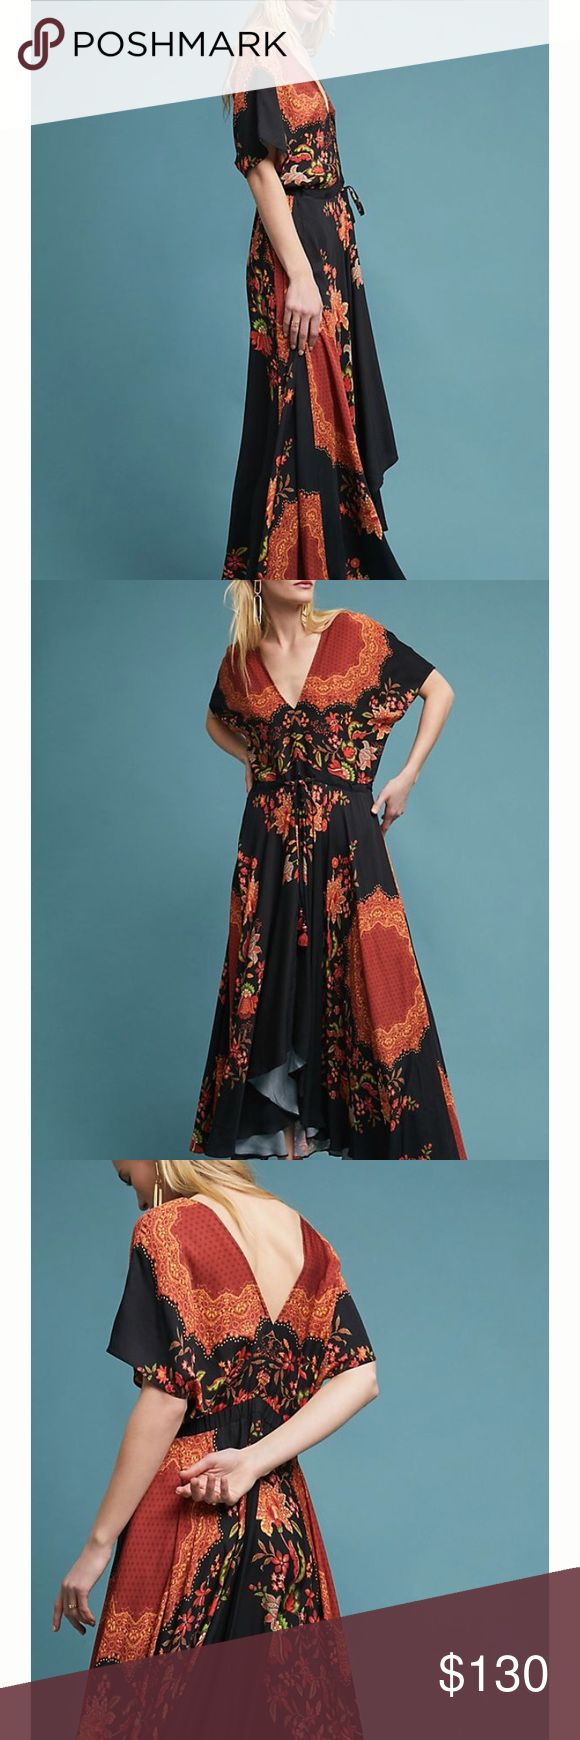 Anthropology dress Flowery new with tag Anthropologie Dresses Maxi